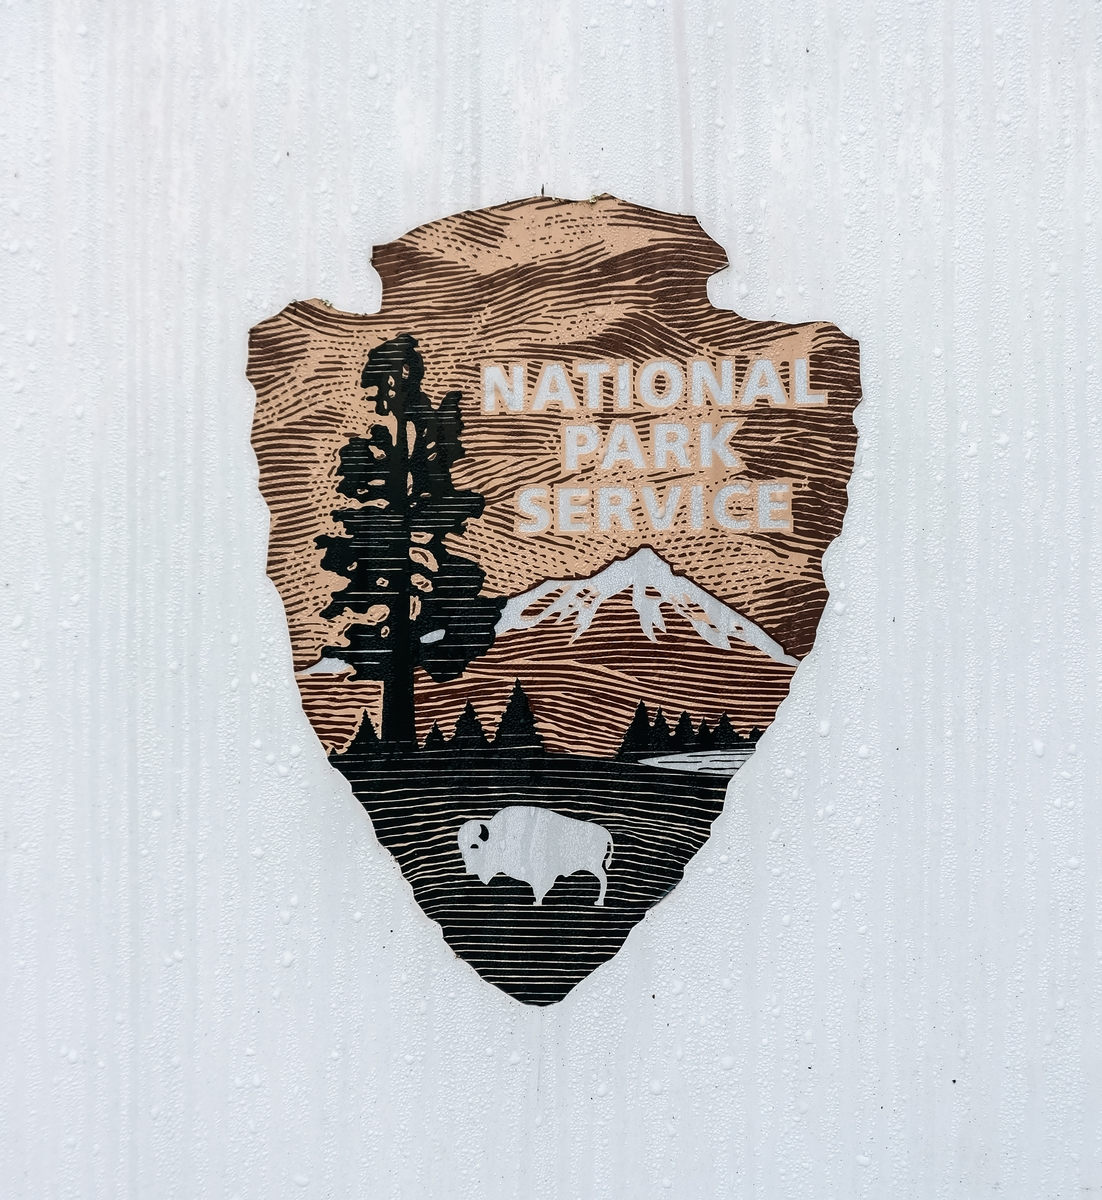 National Park Service arrowhead insignia at Great Smoky Mountains National Park in Virginia.